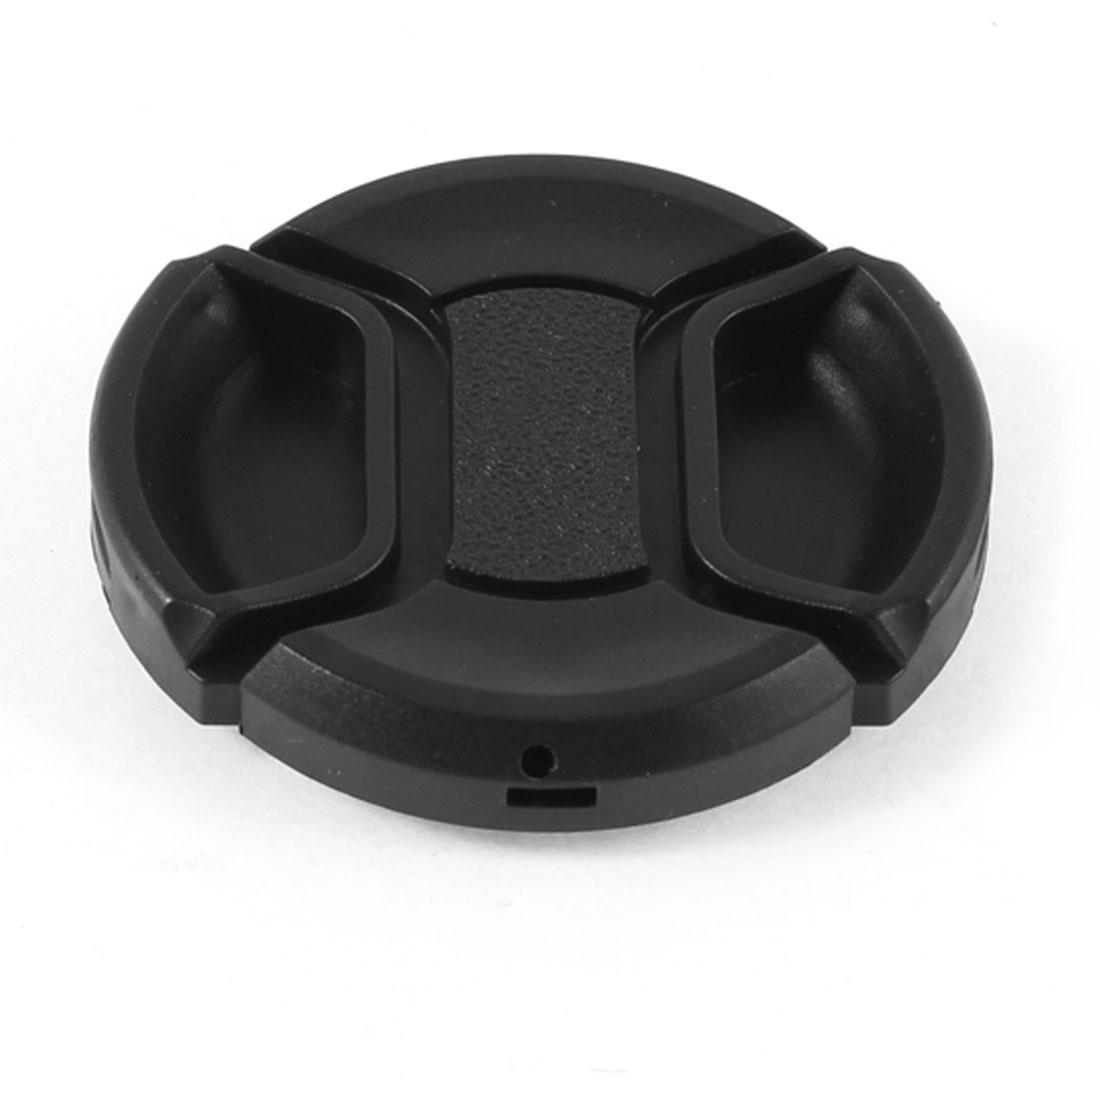 Universal 46mm Center Pinch Front Lens Cap for DSLR Camera